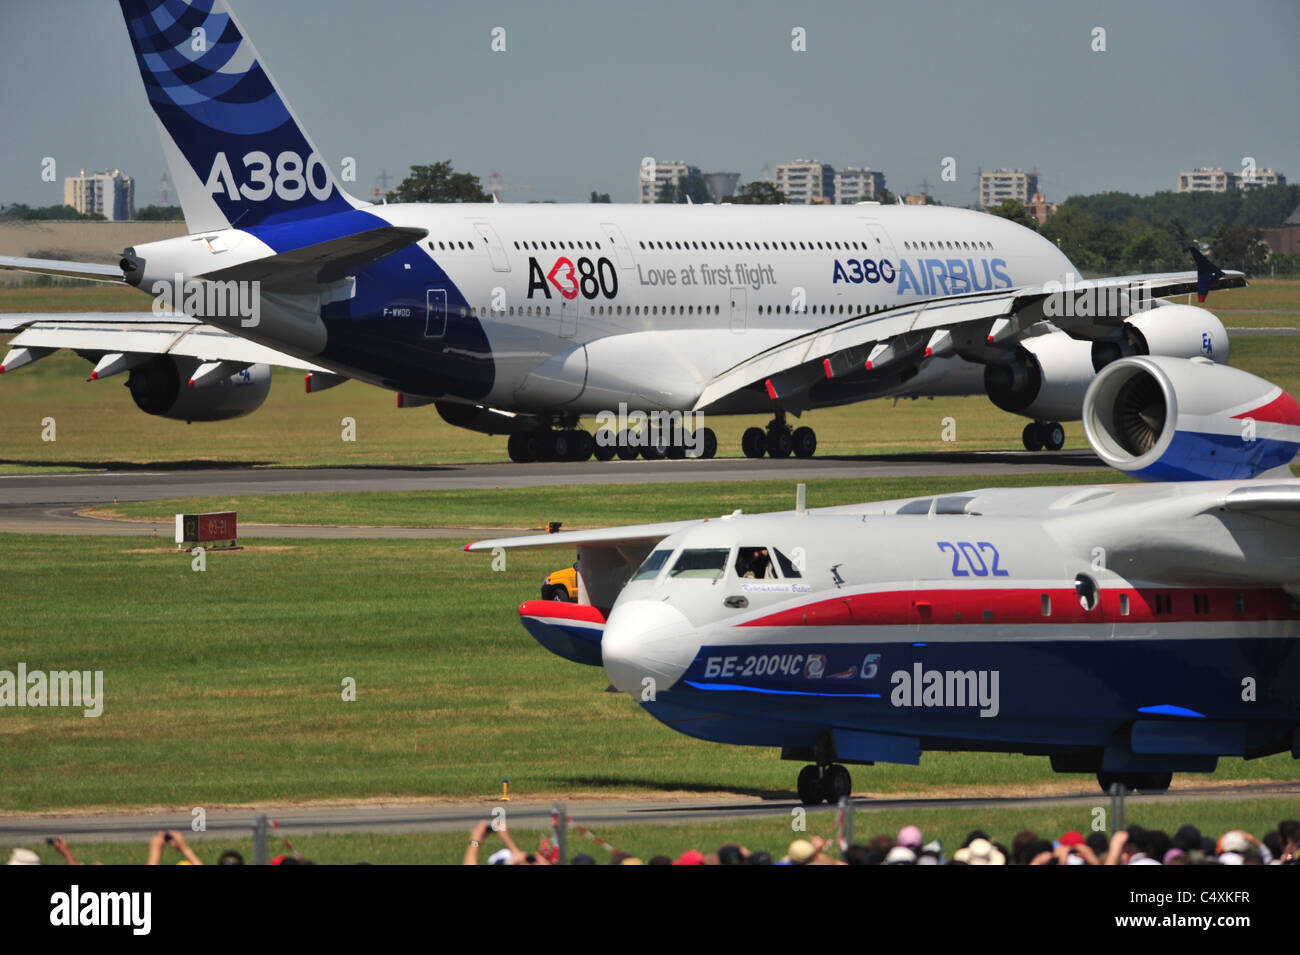 Beriev Be-200 Altair and Airbus A380 at Le Bourget Airshow 2011 - Stock Image